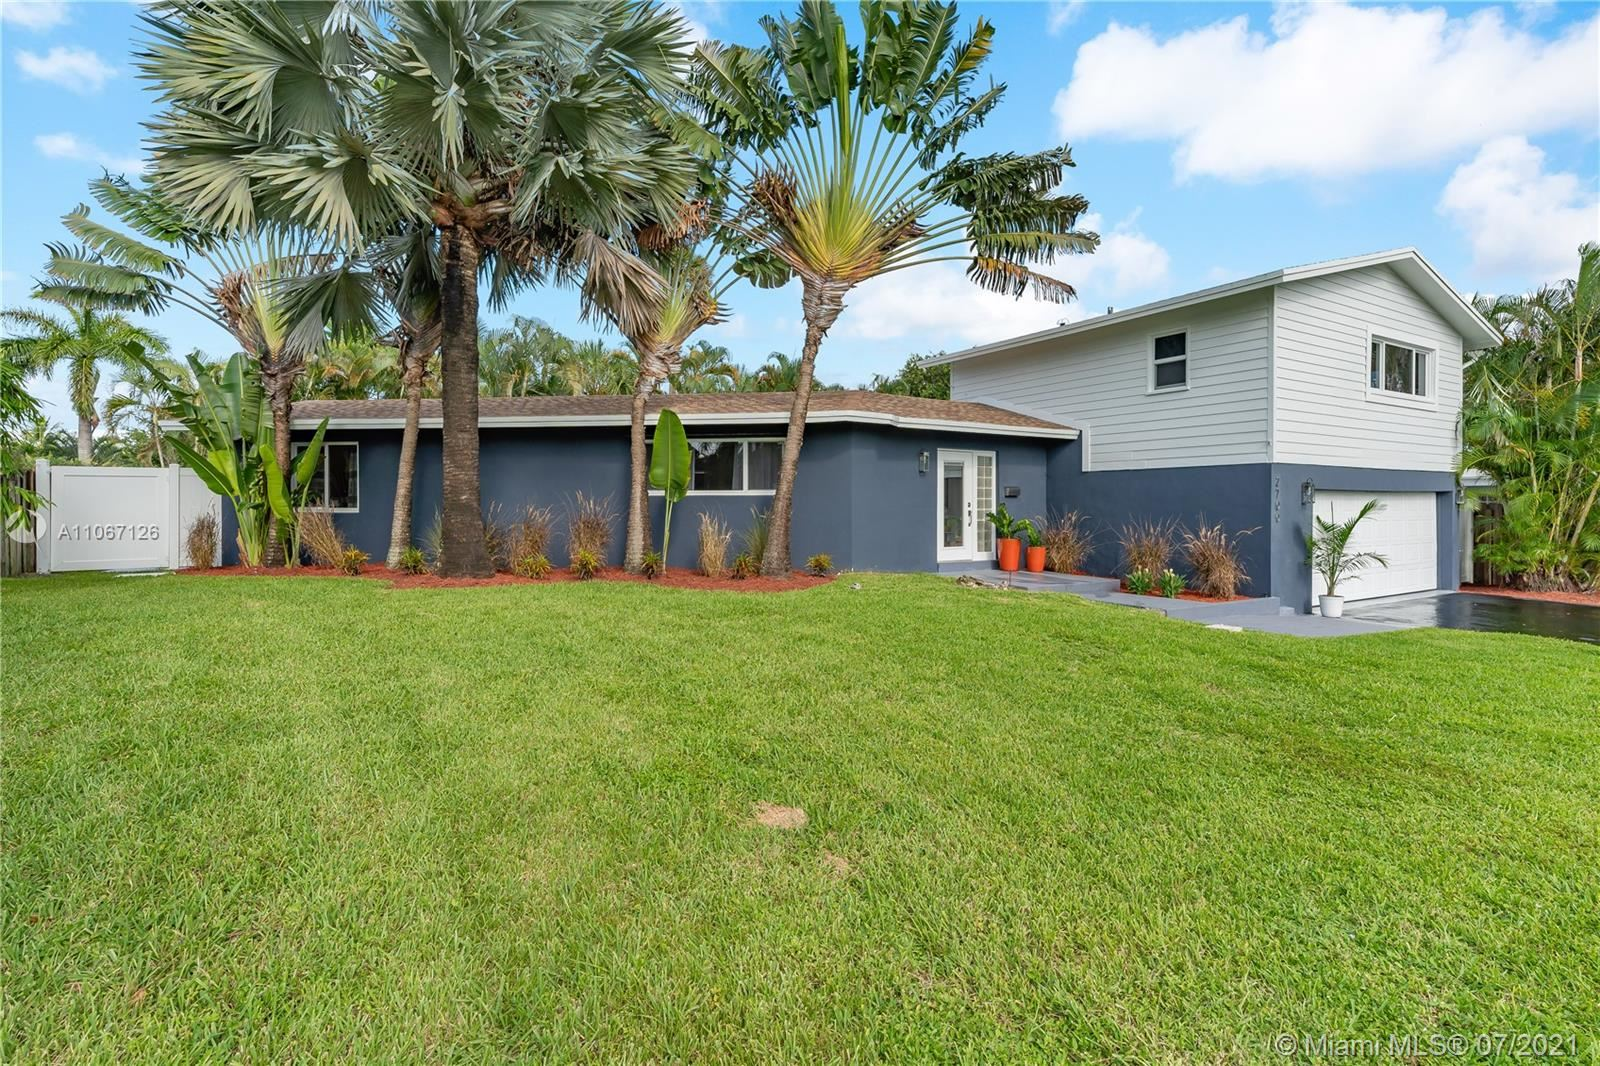 2700 SW 34th Ave, Fort Lauderdale, FL 33312 - #: A11067126